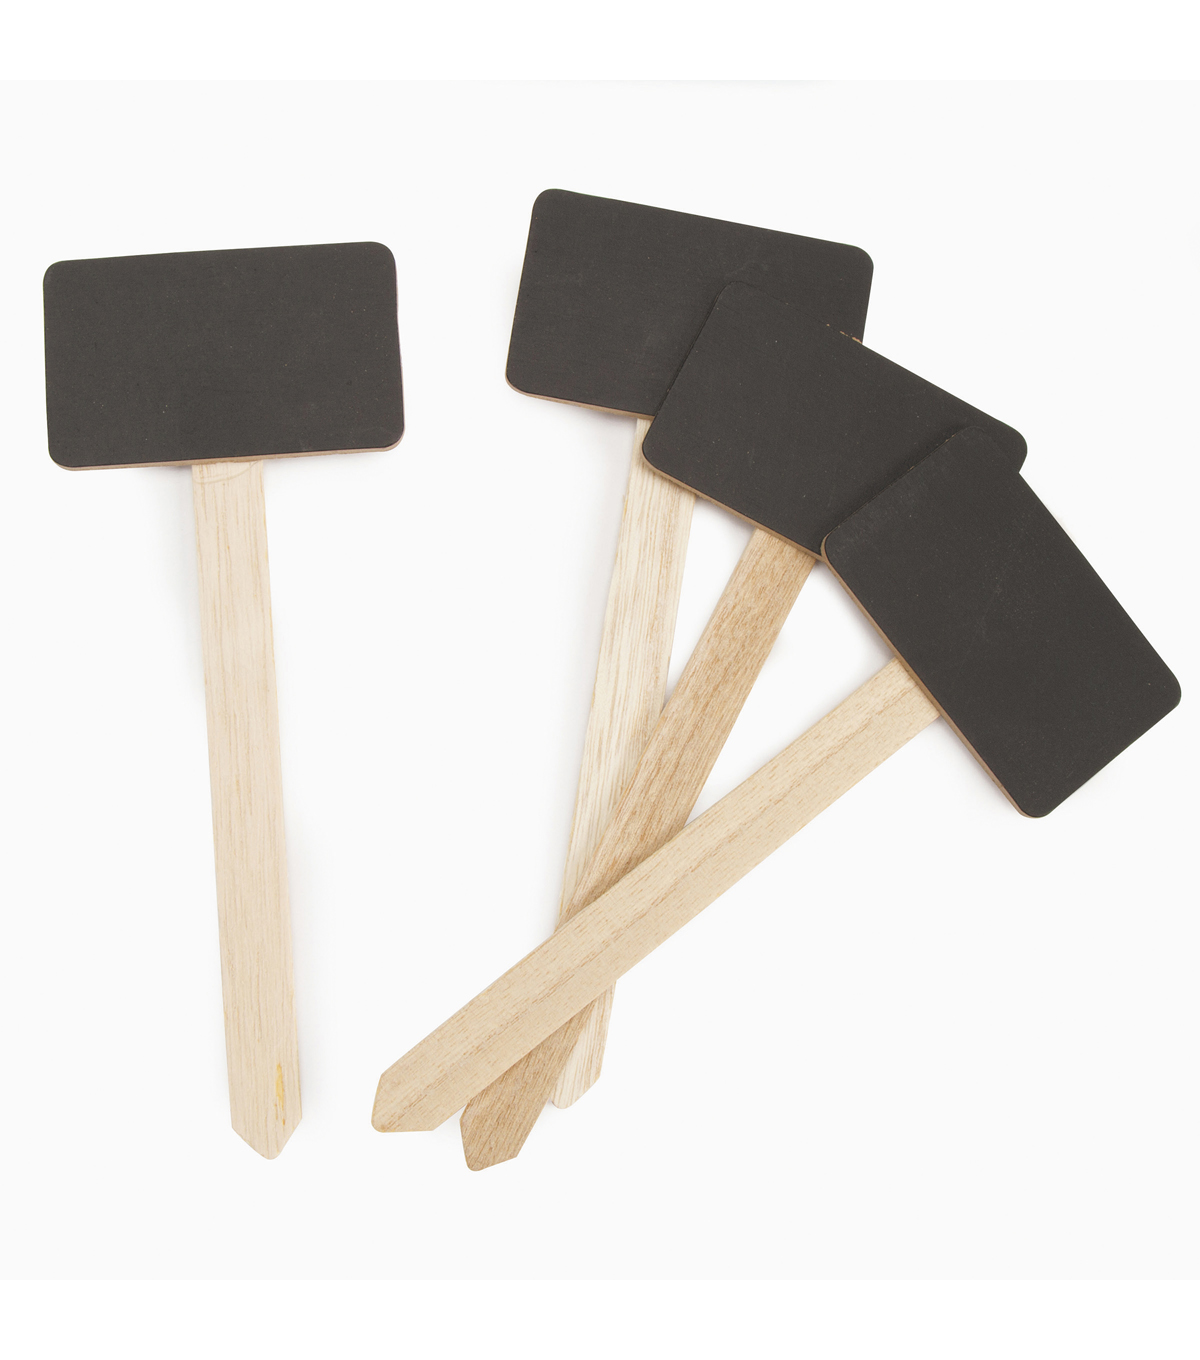 Darice Craftwood 4 pk Small Chalkboard Stake Signs